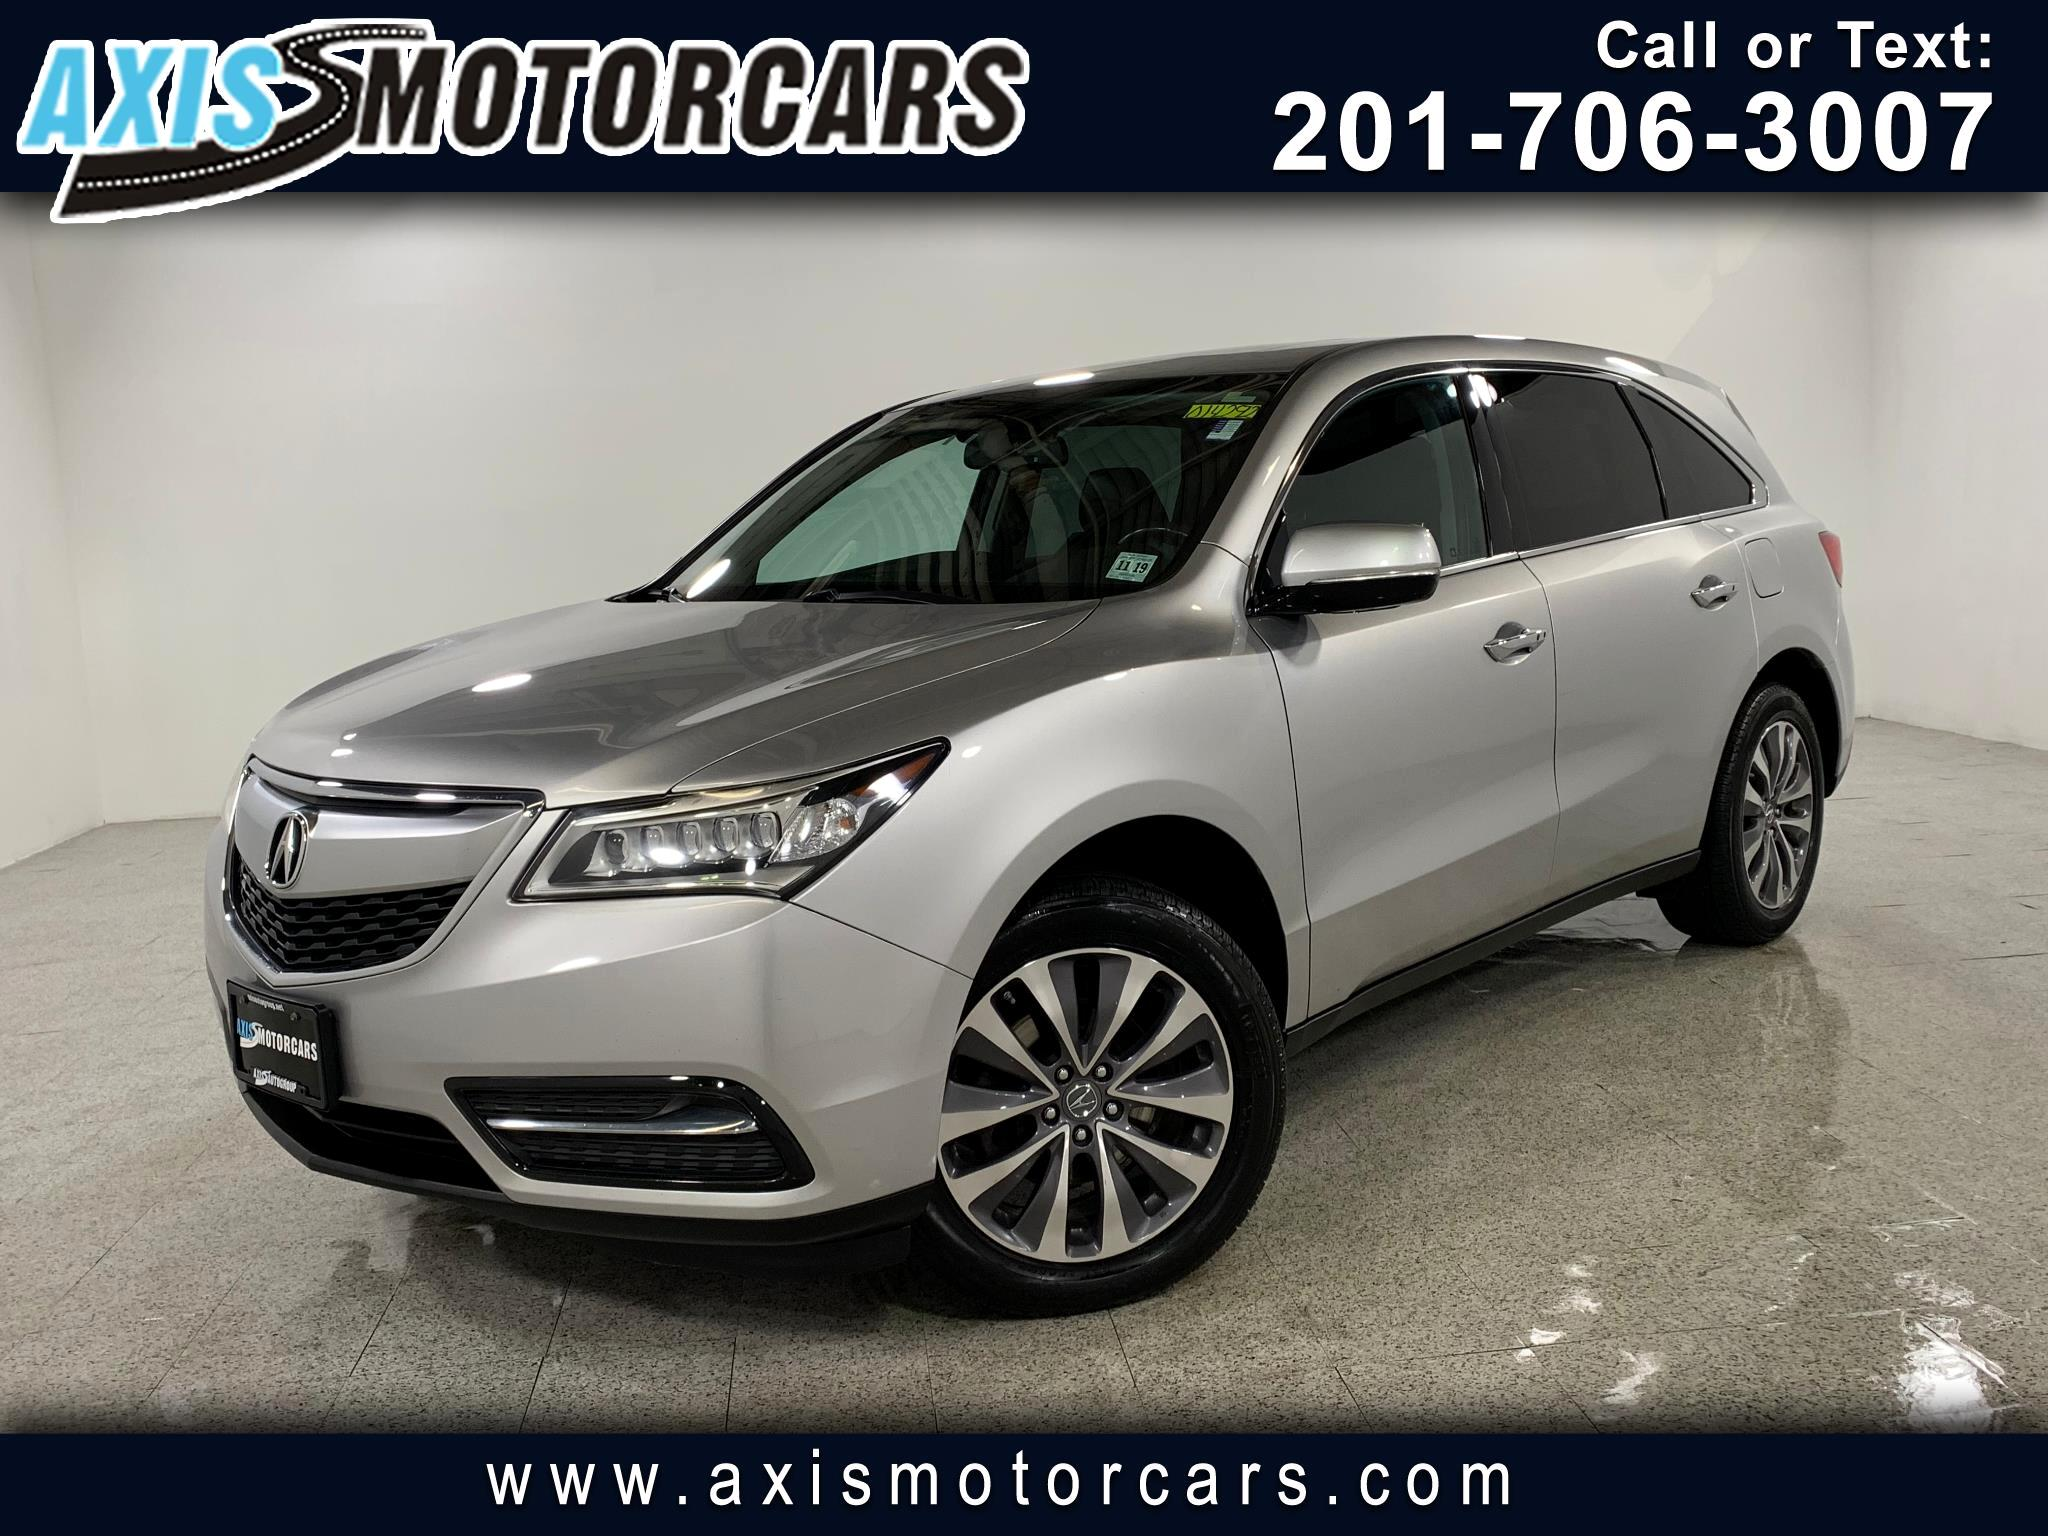 2014 Acura MDX SH-AWD Tech w/Navigation Bakup Camera